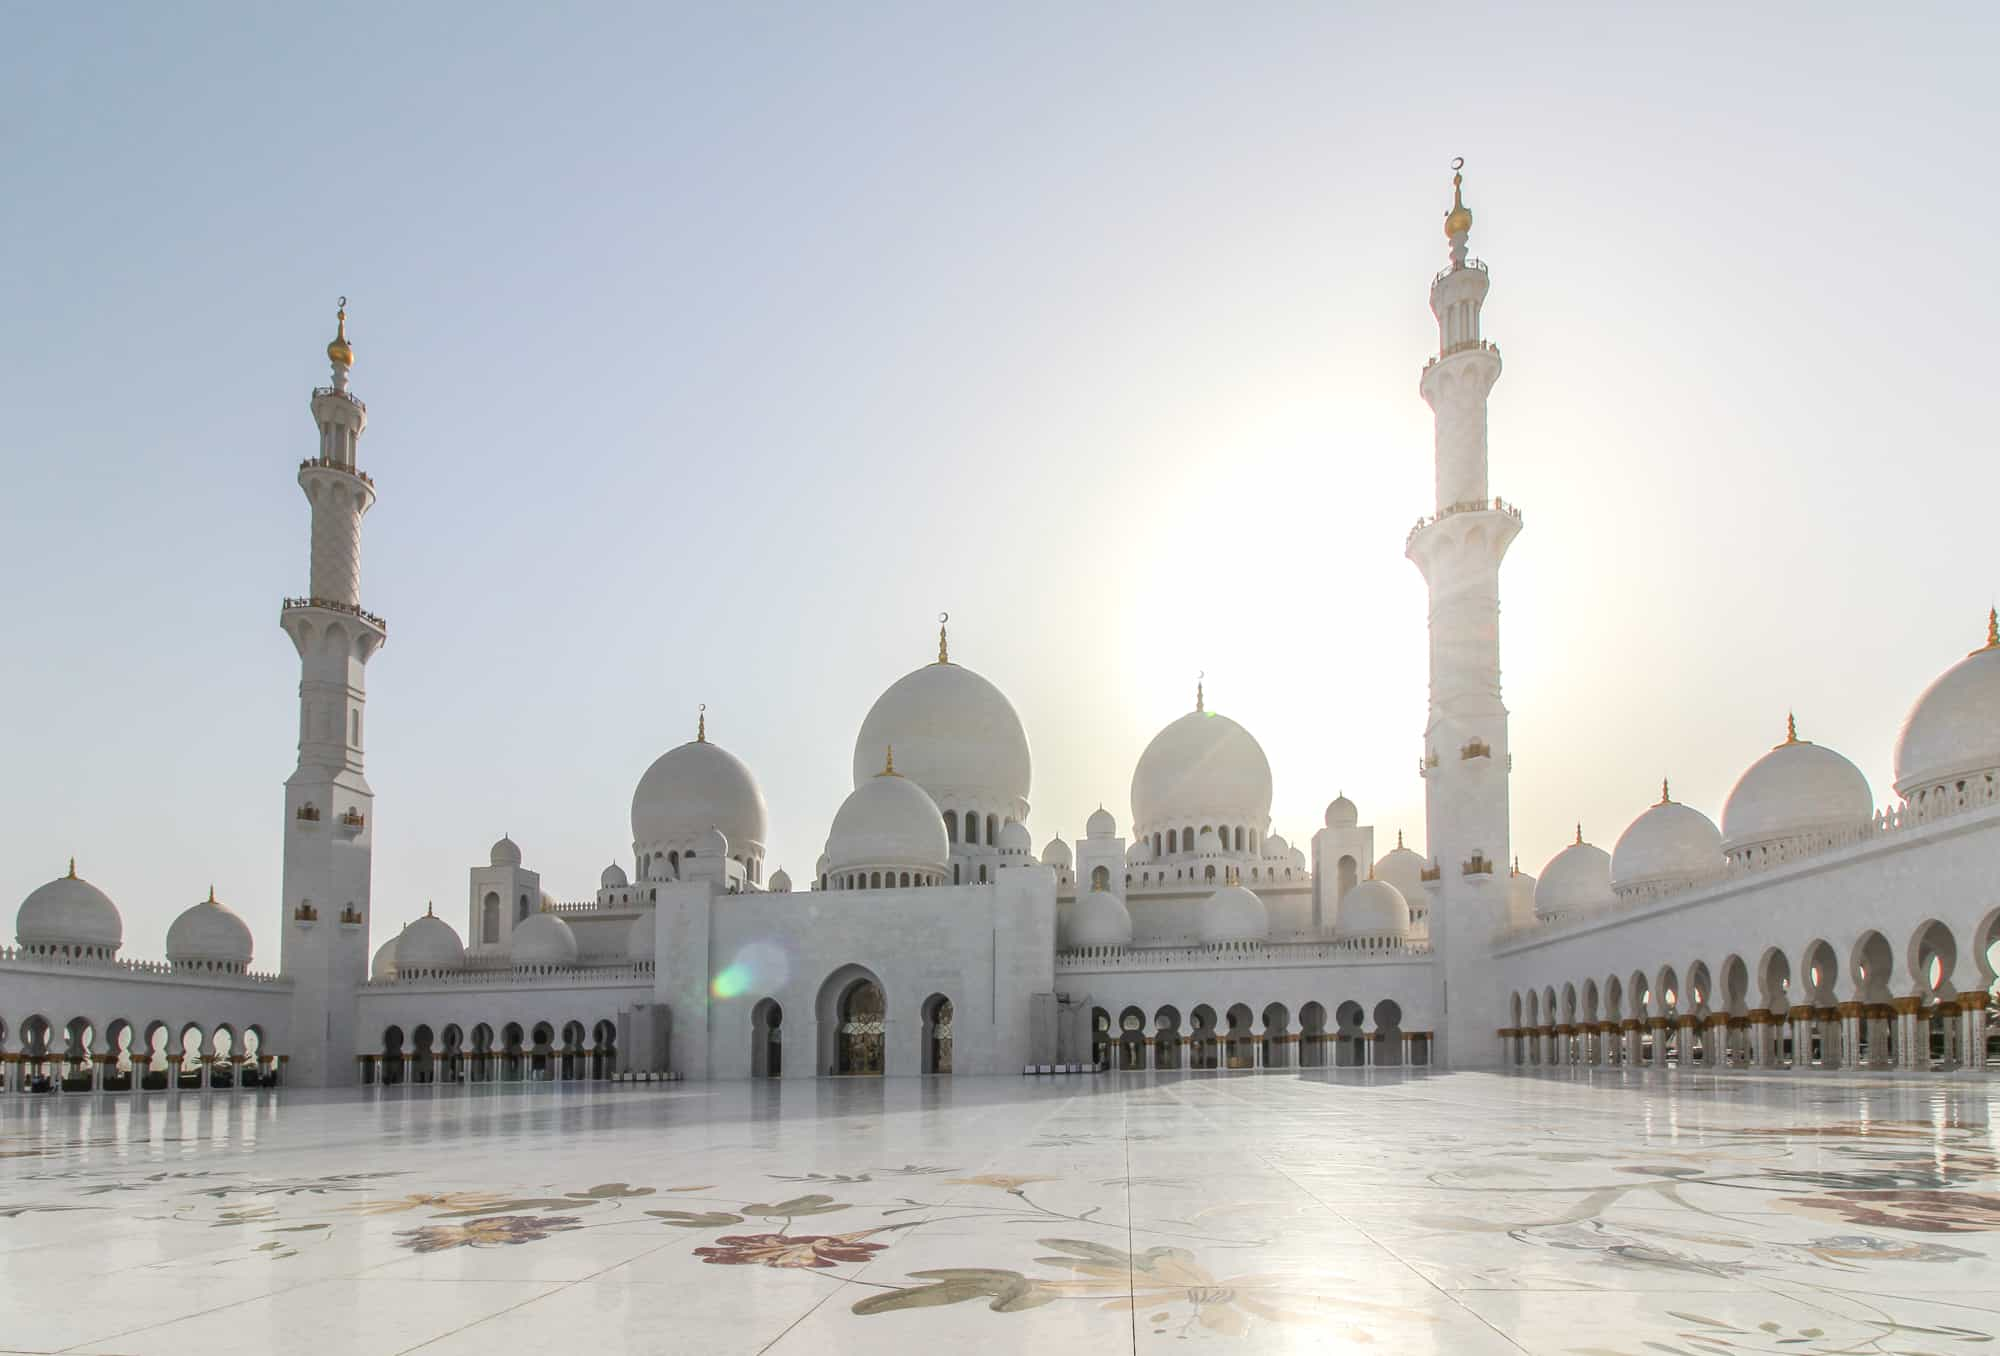 Sheikh Zayed Grand Mosque A Day Trip From Dubai To Abu Dhabi